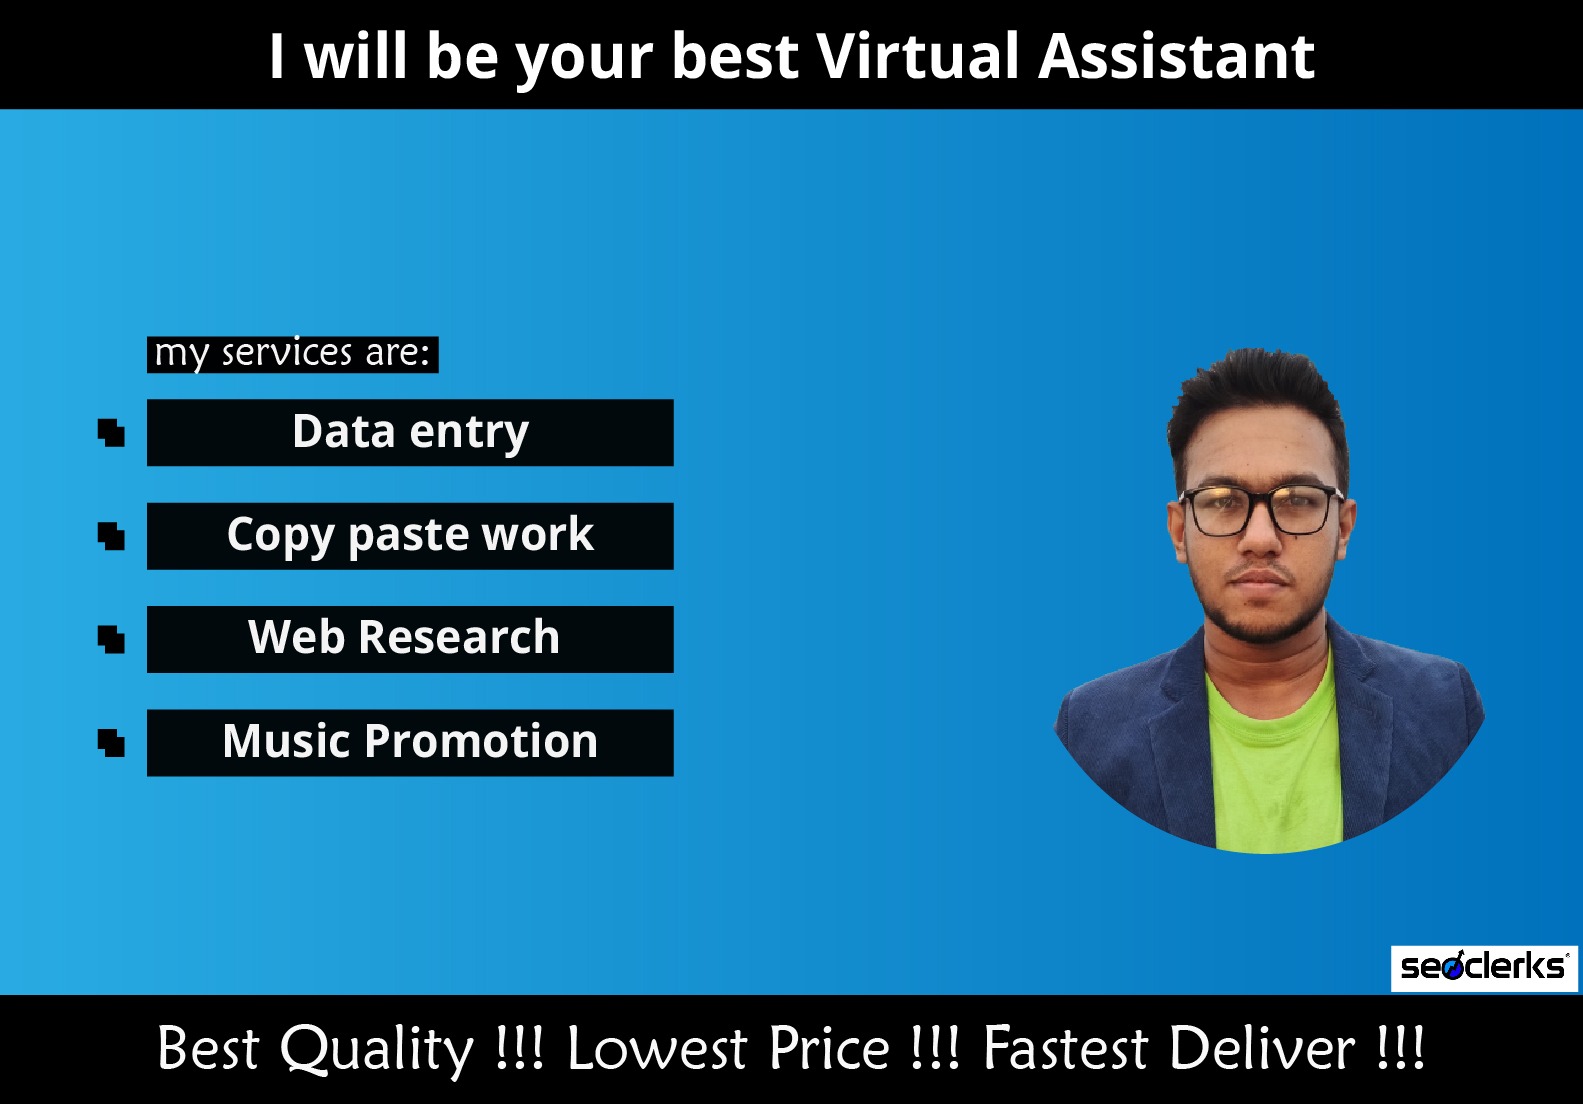 I will be your best Virtual Assistant for 1 hour